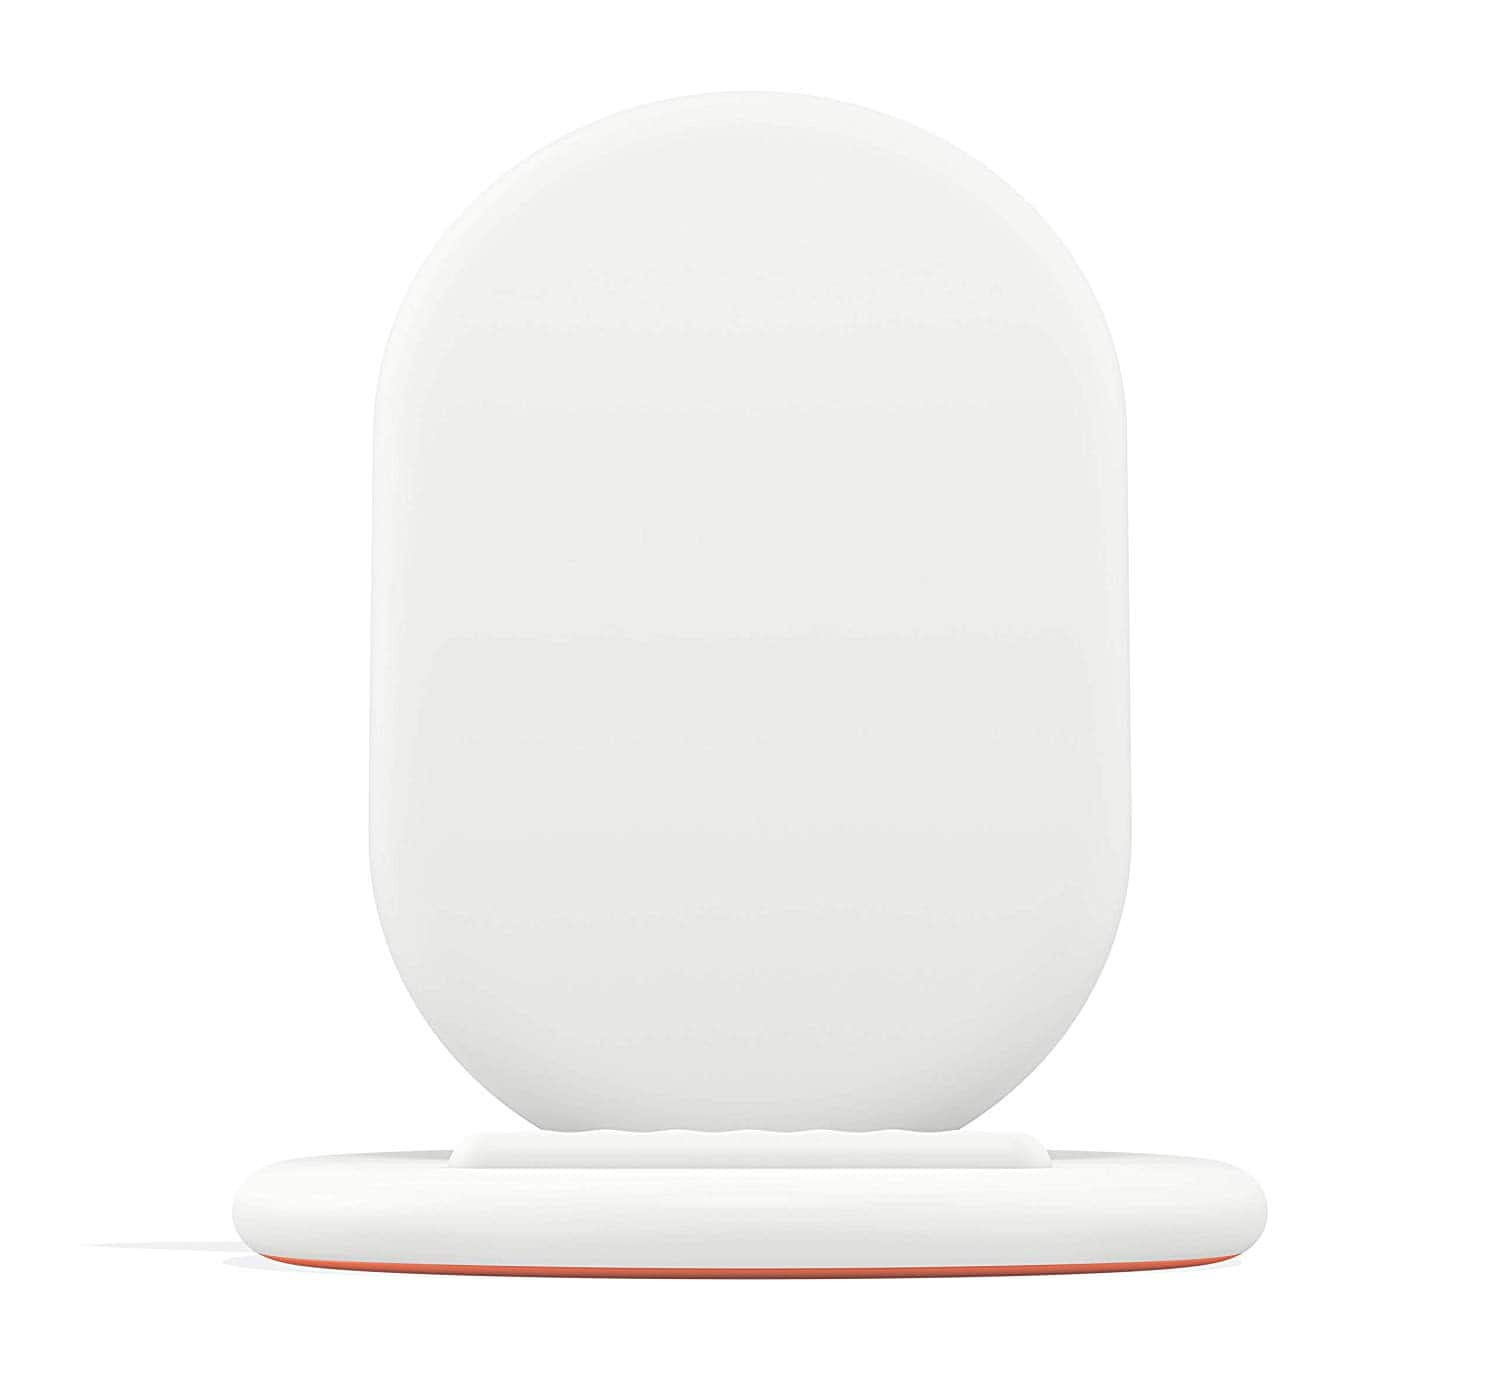 Google Wireless Charger for Pixel 3, Pixel 3XL - White $59.99